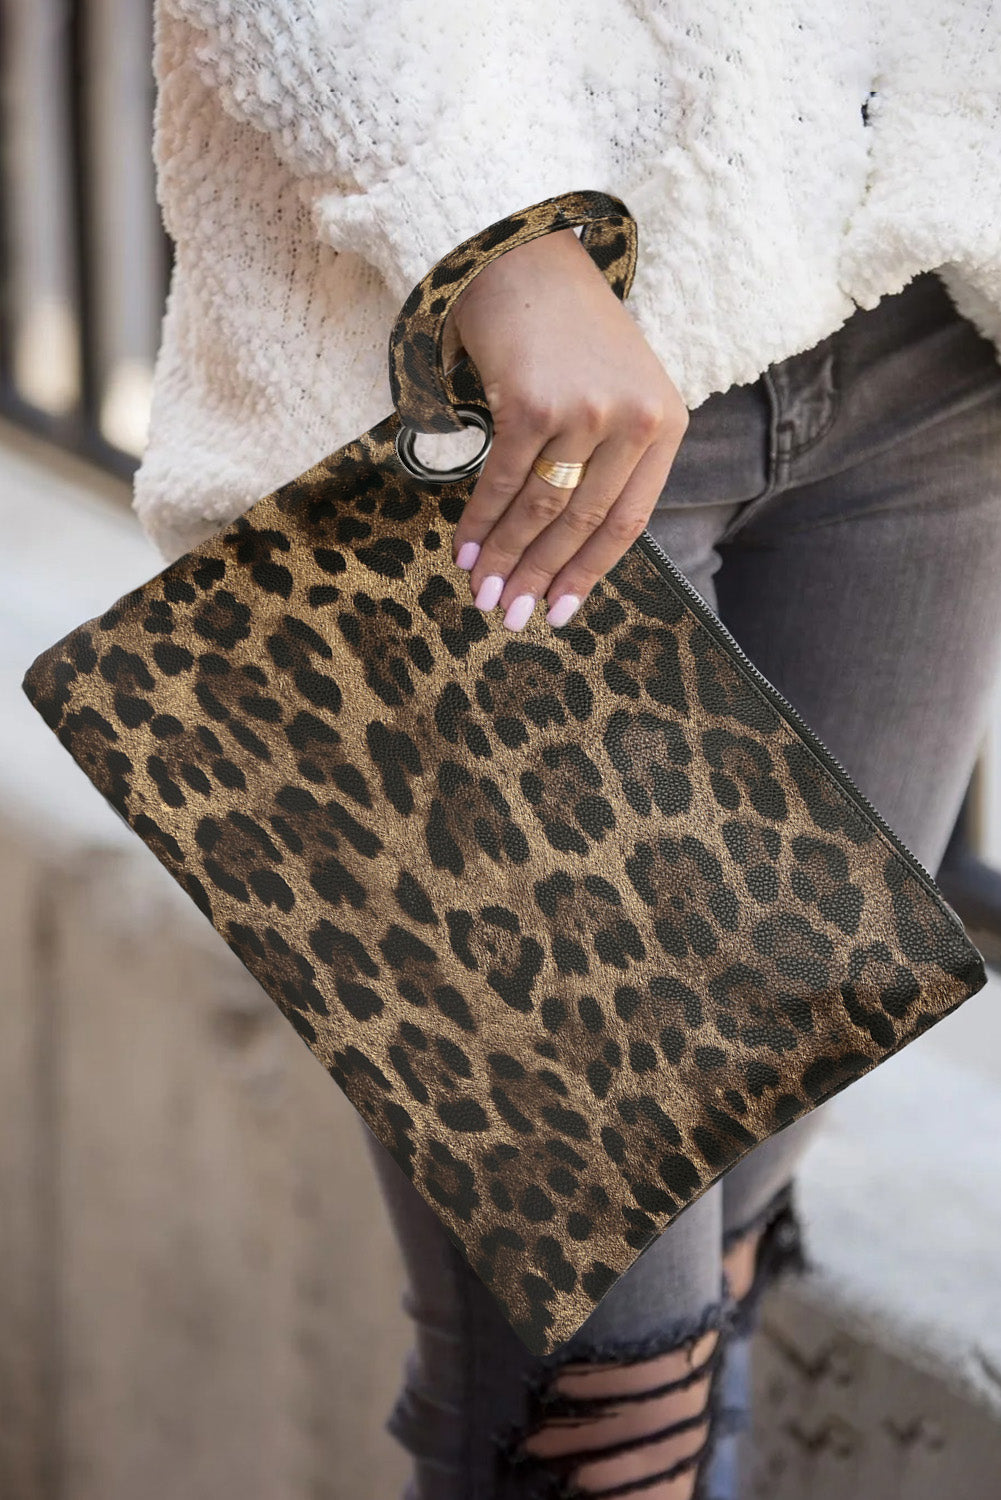 Brown Trendy Leopard Clutch Bags Discount Designer Fashion Clothes Shoes Bags Women Men Kids Children Black Owned Business